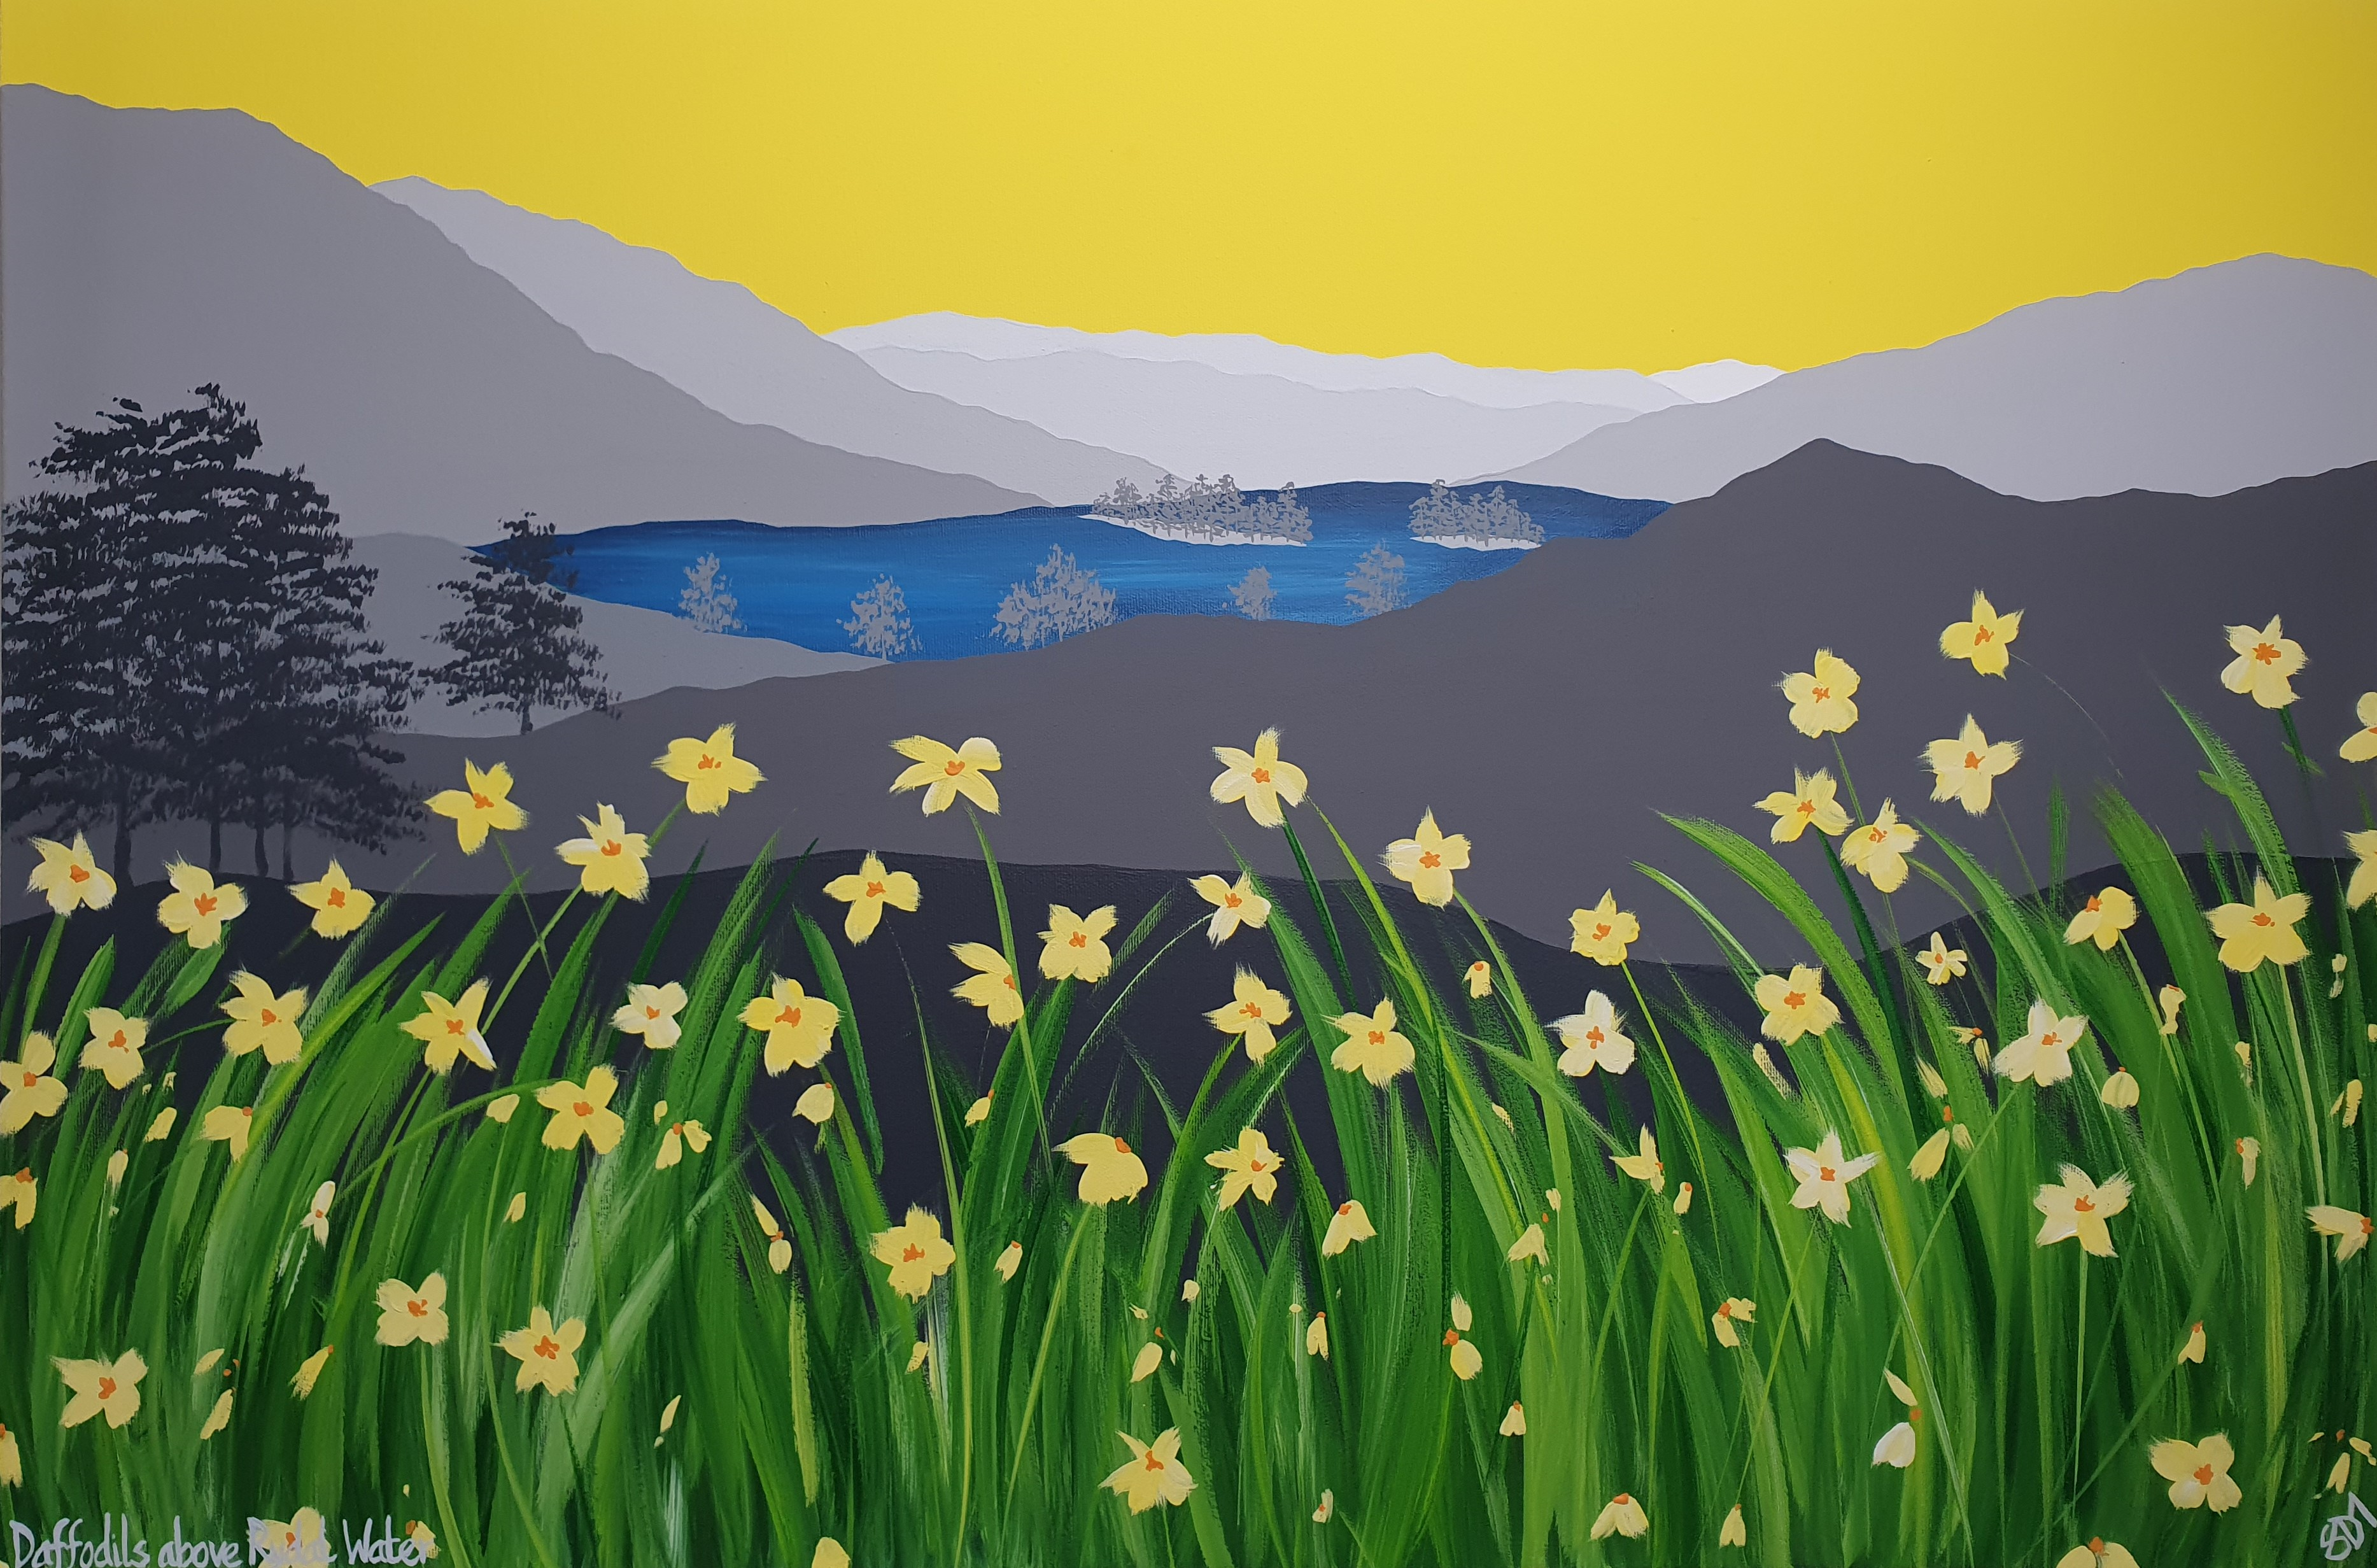 Daffodils above Rydal Water